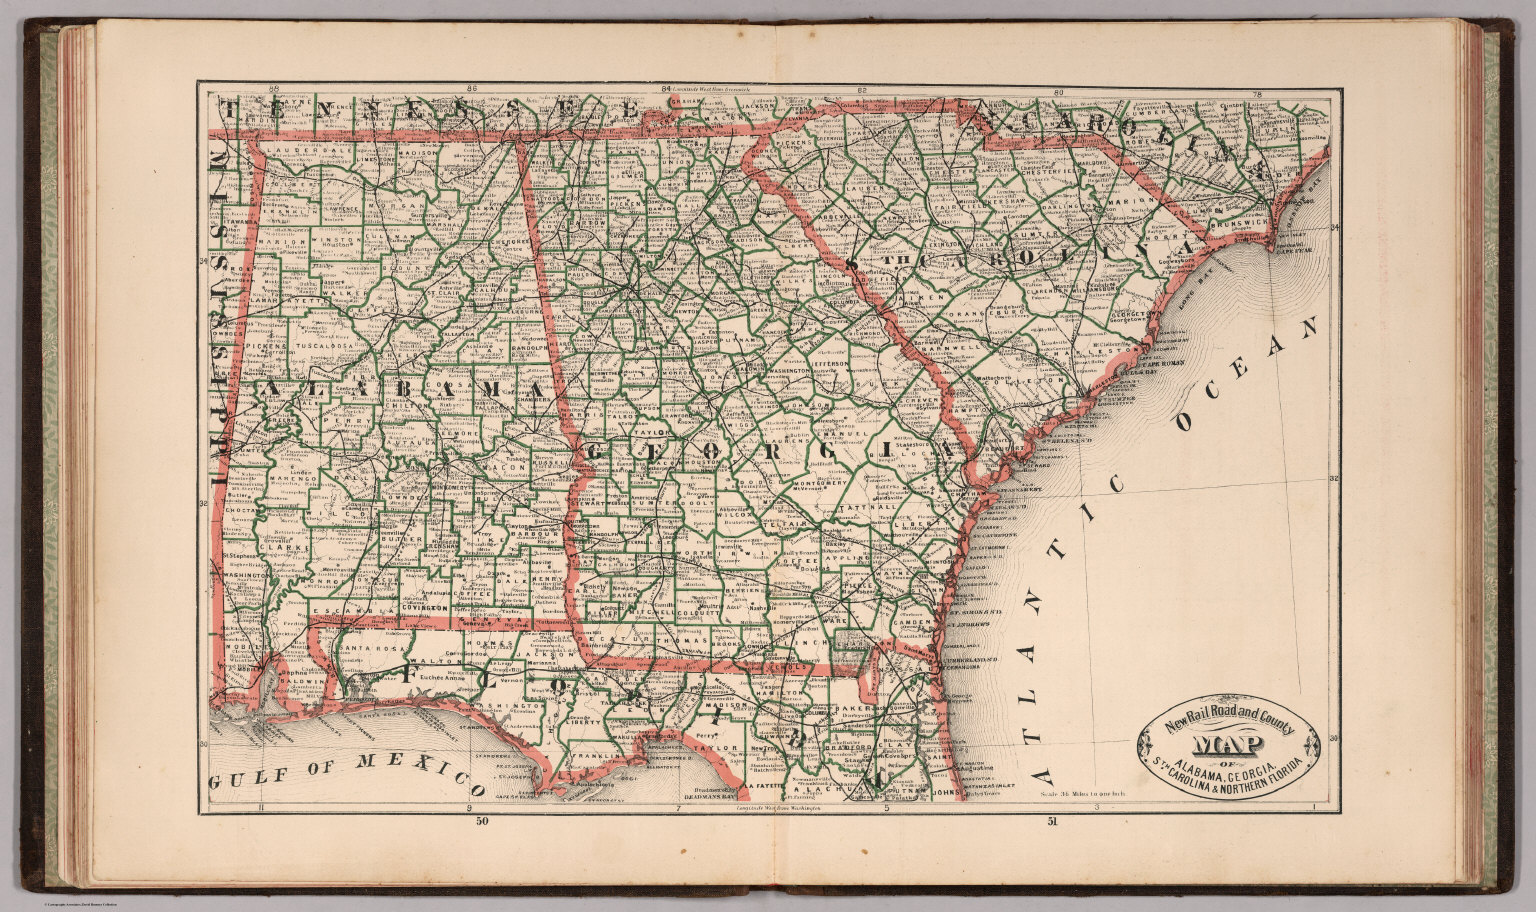 New Rail Road And County Map Of Alabama Georgia South Carolina - Road map of alabama